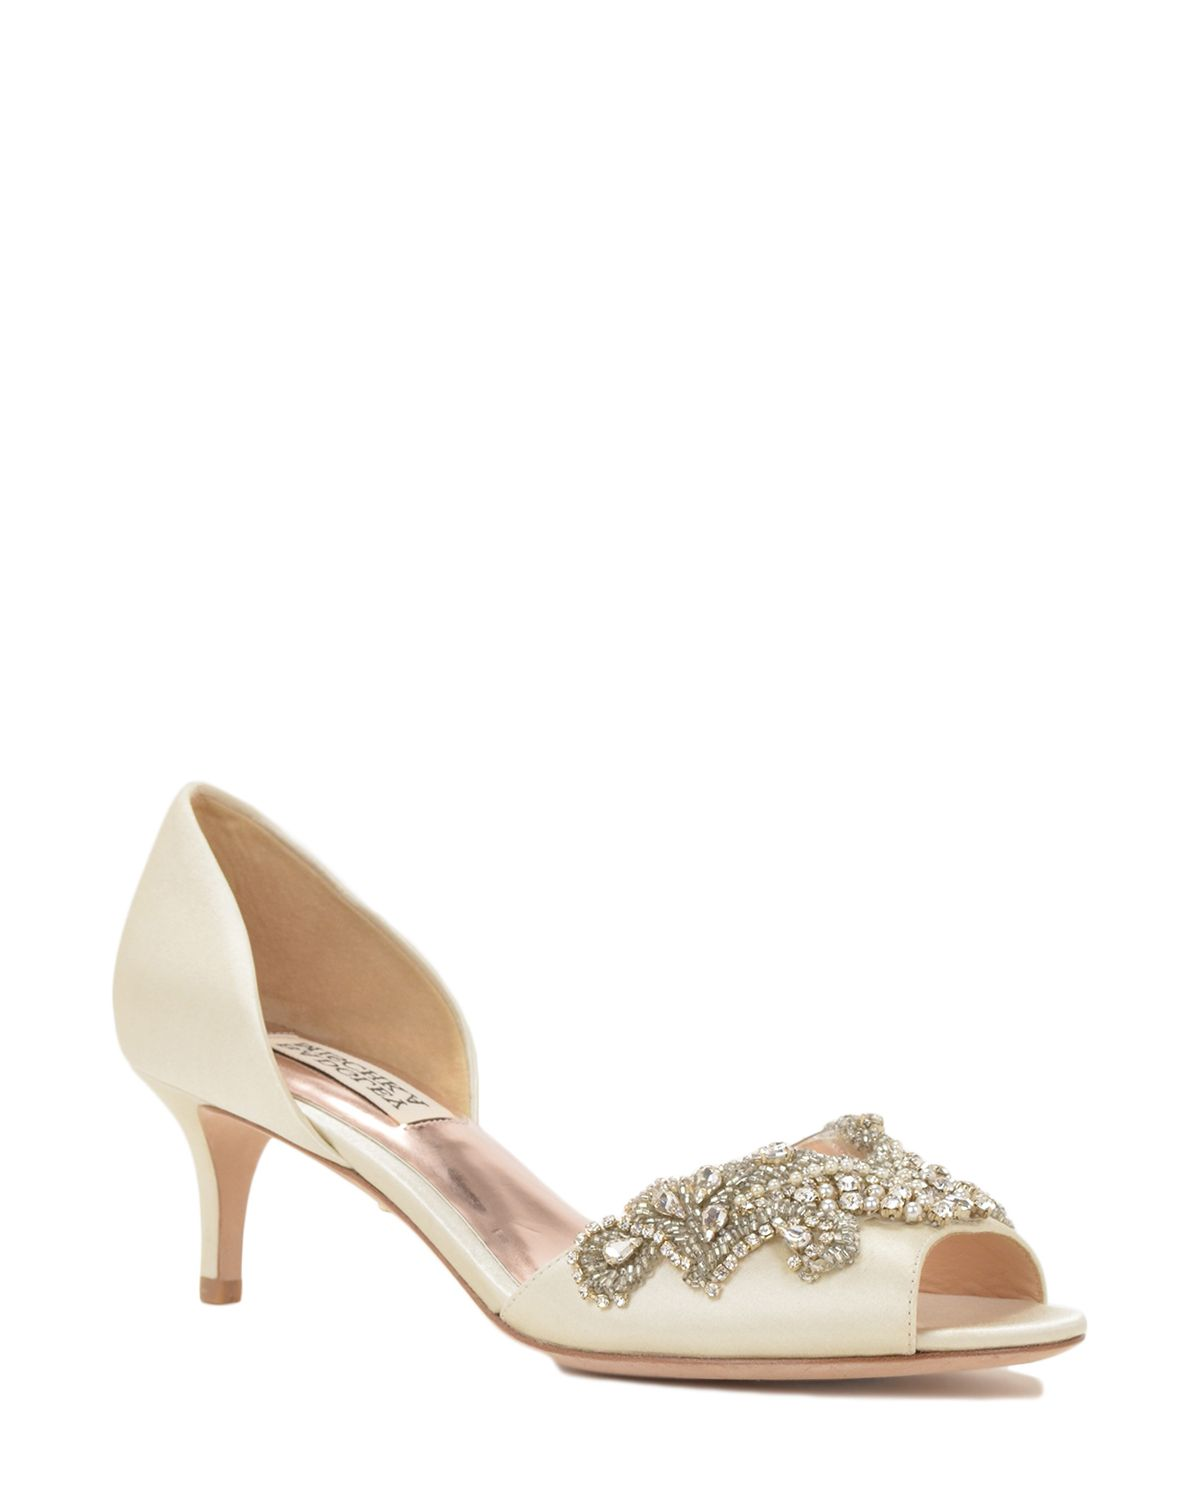 Badgley Mischka Barclay D Orsay Heel Evening Shoe now available